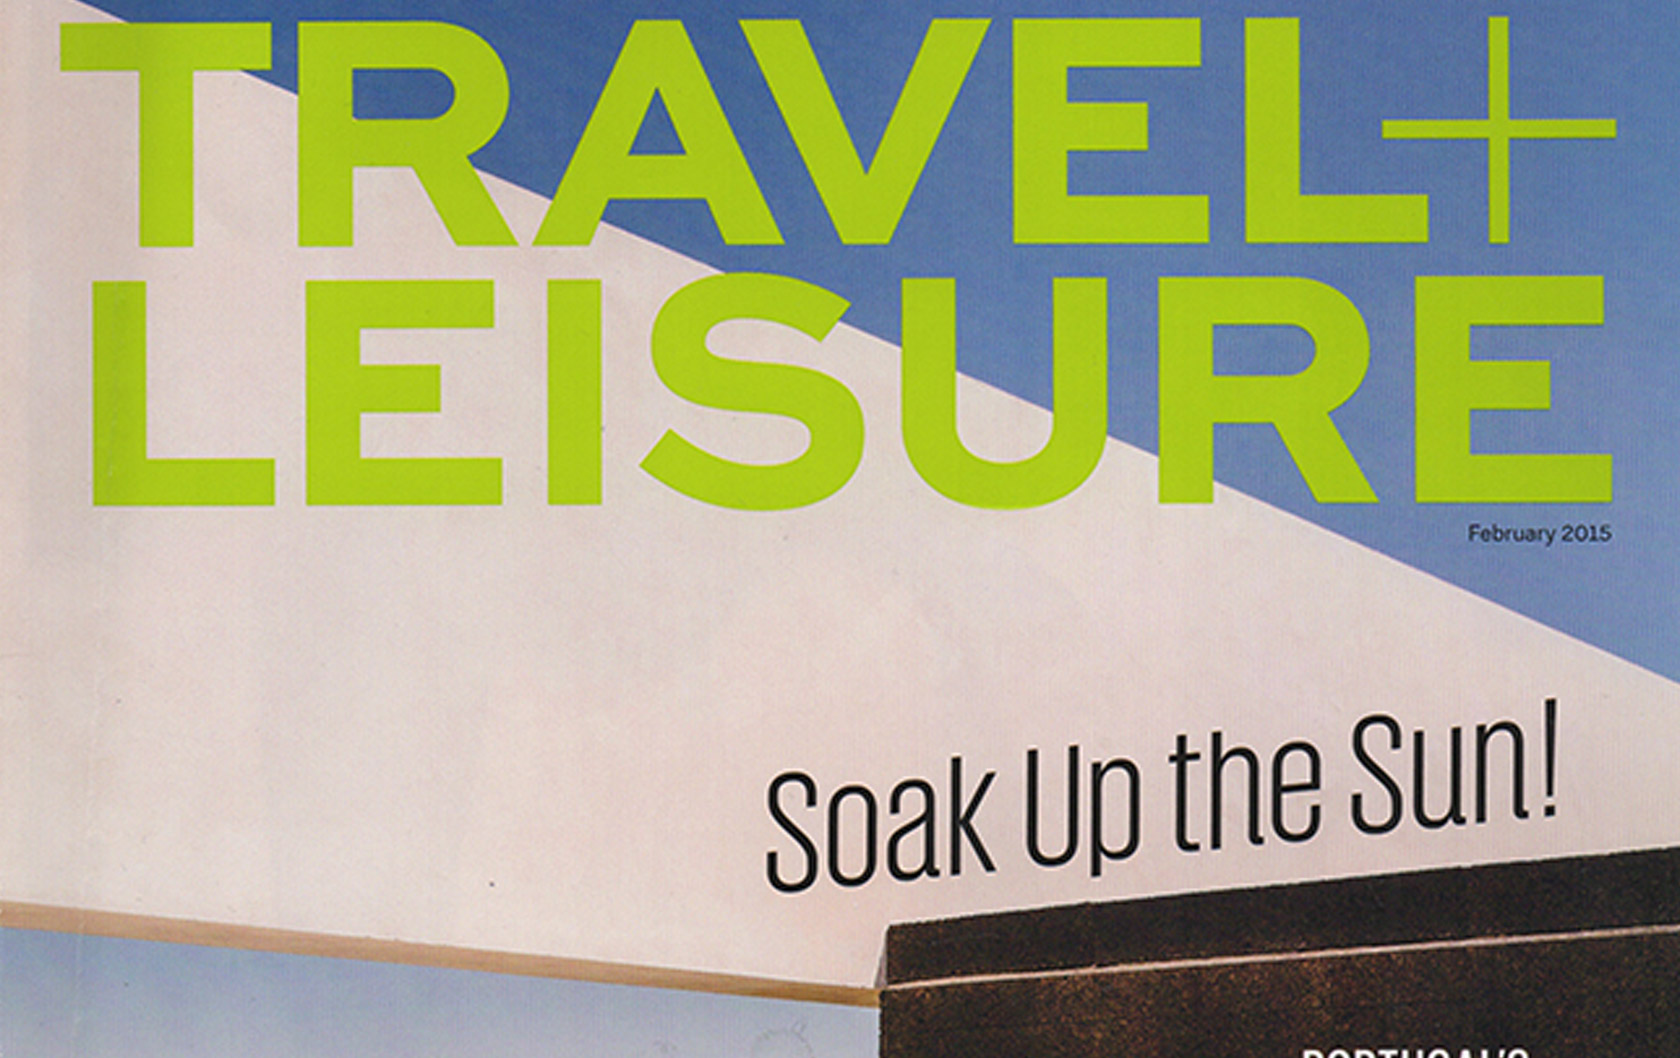 Italy Perfect Featured in Travel + Leisure Magazine